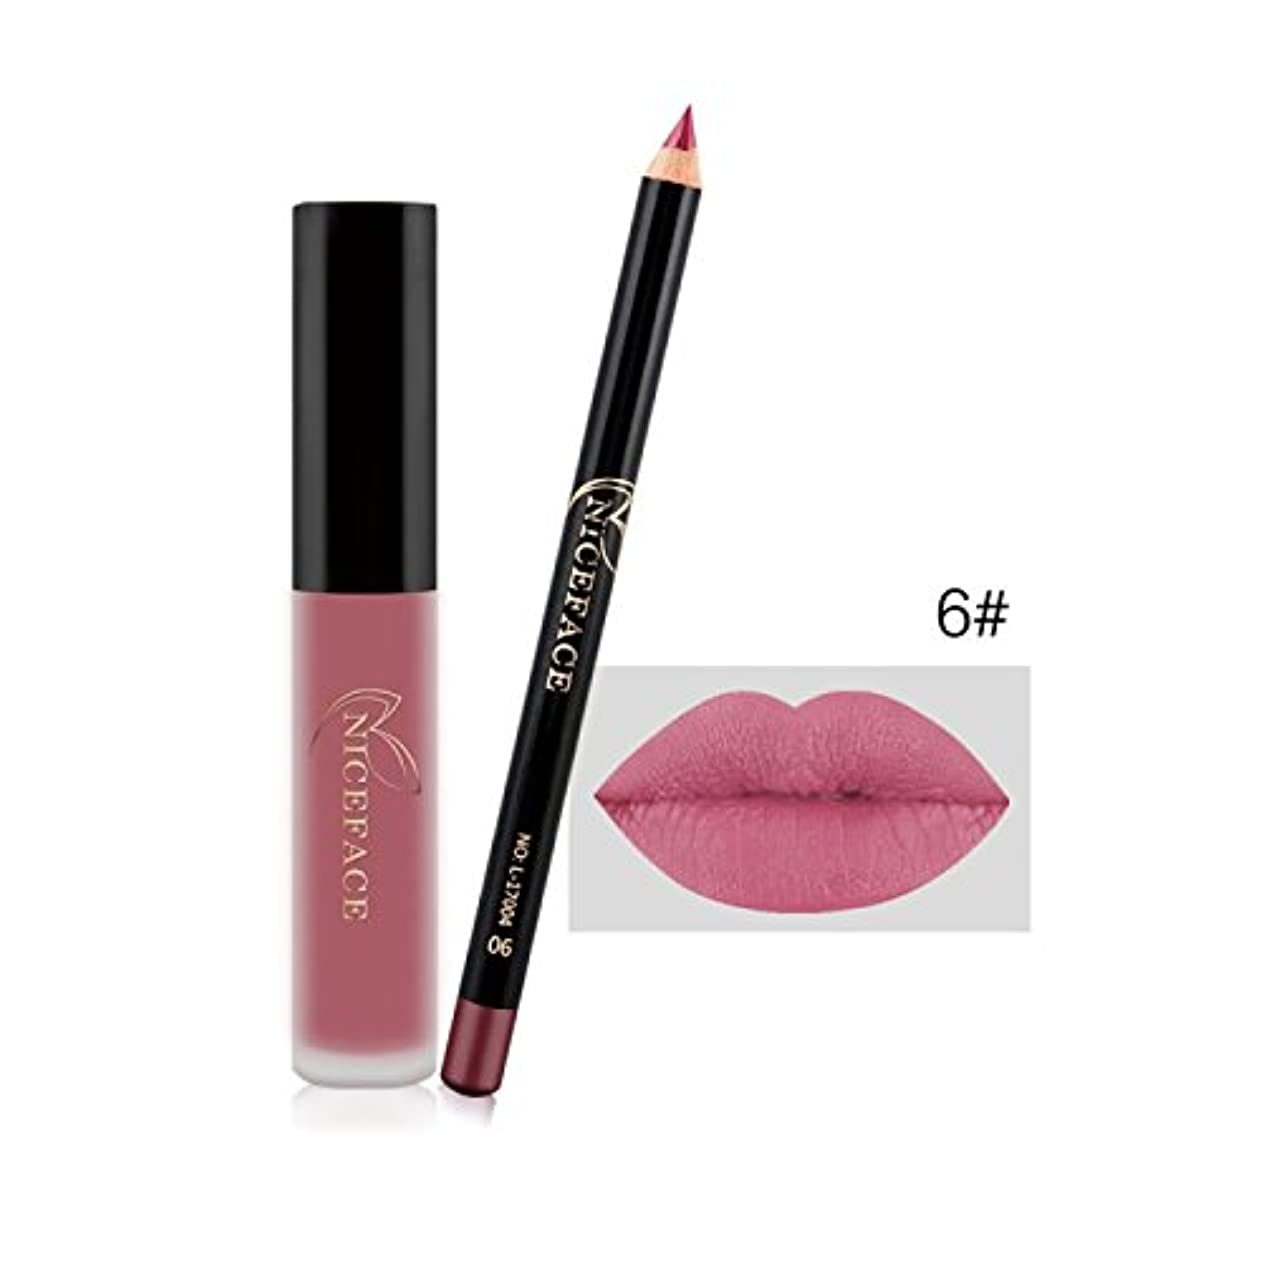 間グレートオーク改修(6#) Makeup Set Lip Gloss + Lip Liner Set Lip Set Matte Lipstick Long Lasting Waterproof Solid Lip Pencil Liner...